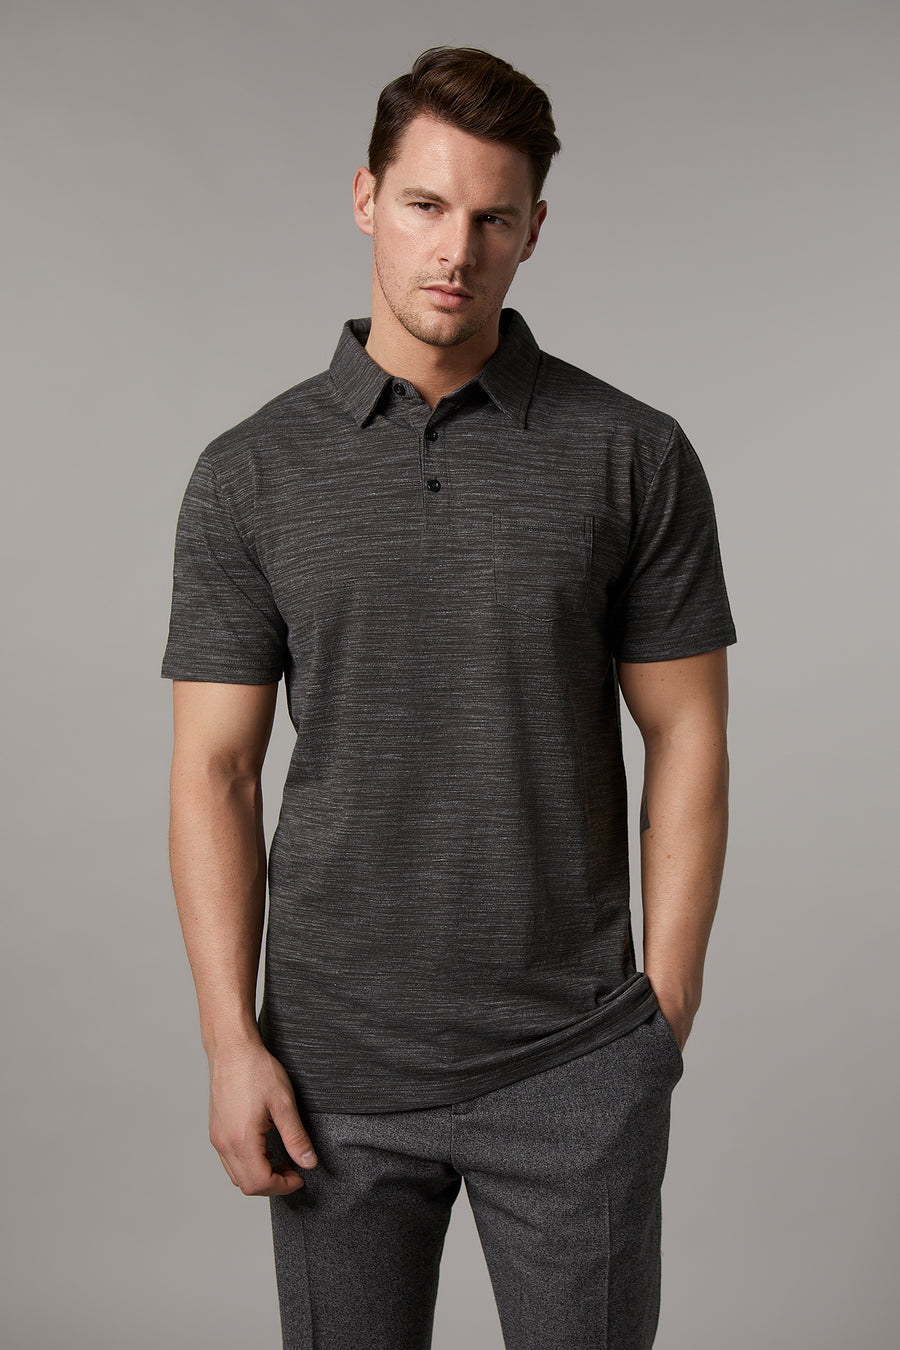 Johnny Cotton Melange Khaki Polo